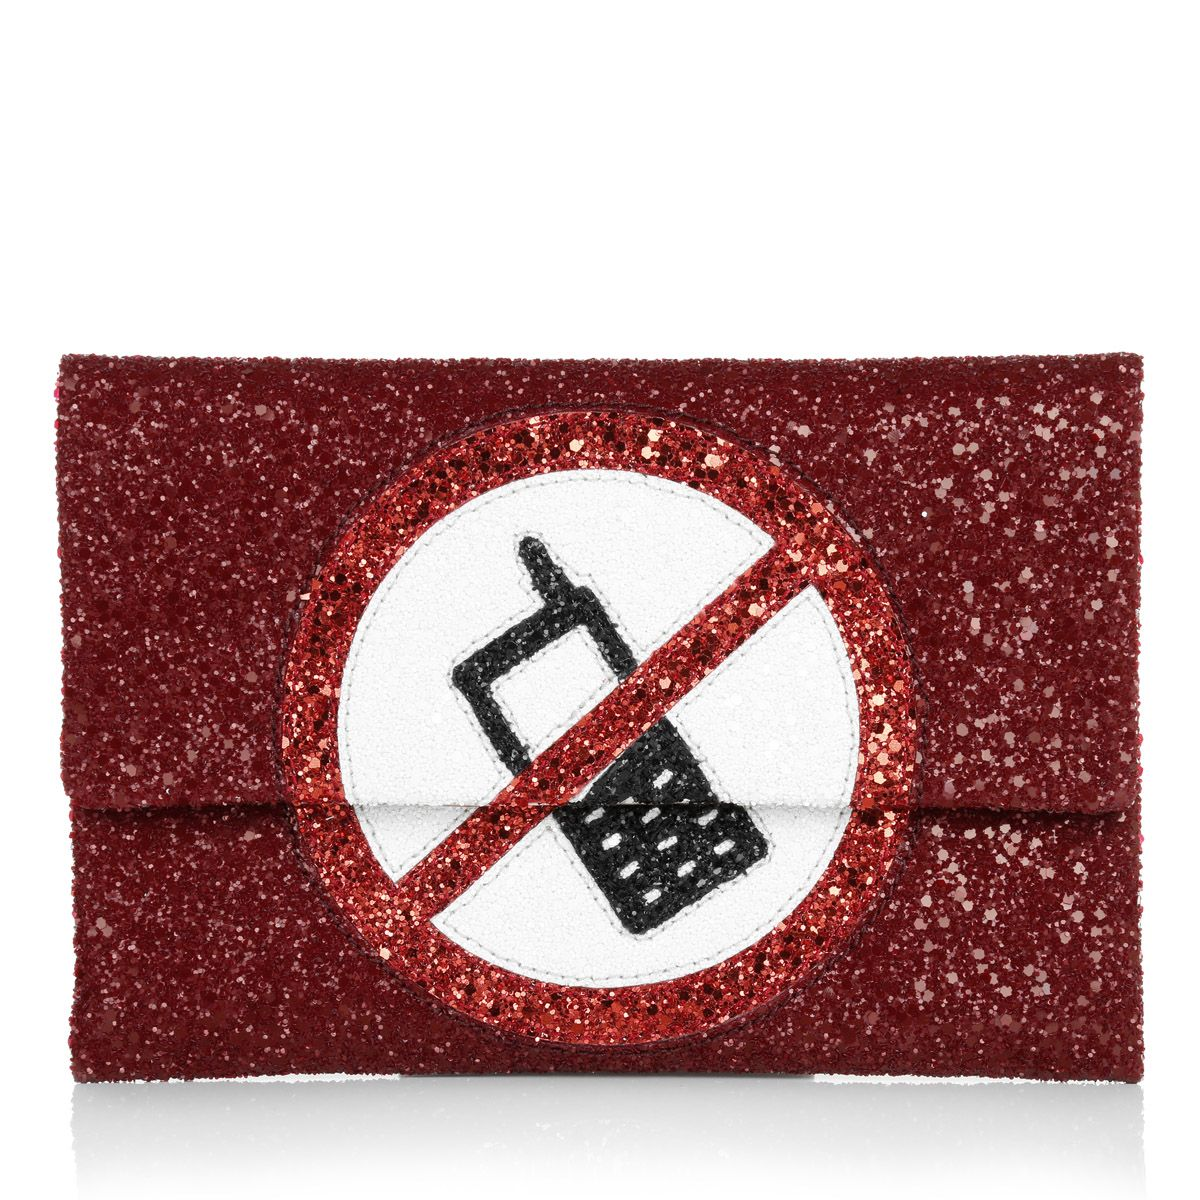 """What a lovely statement clutch by Anya Hindmarch! The """"Valorie No Mobiles"""" in red glitter is the perfect handbag to make your outfit ready for a long night and funny party! But please note: no cell phones!!!! Fashionette.de"""